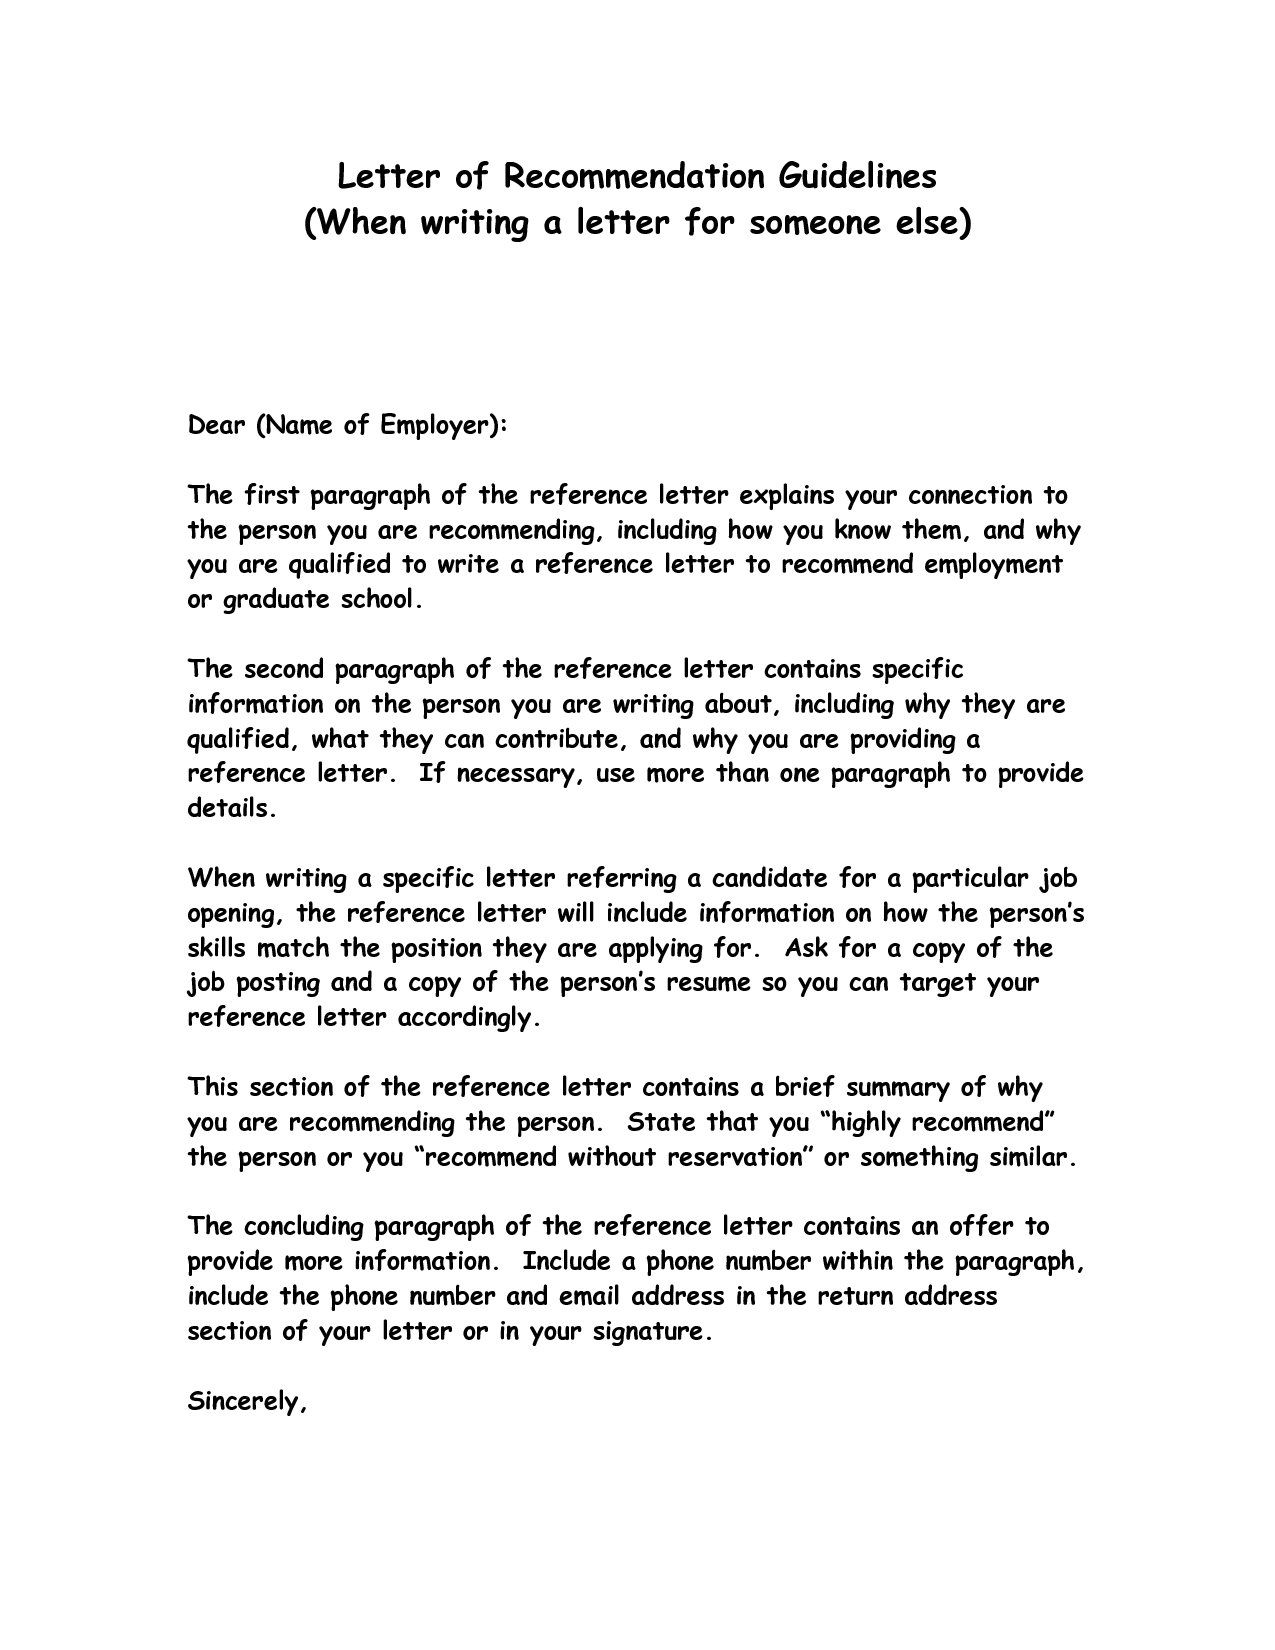 How to write a reference letter letter letter example how to write a reference letter letter mitanshu Images